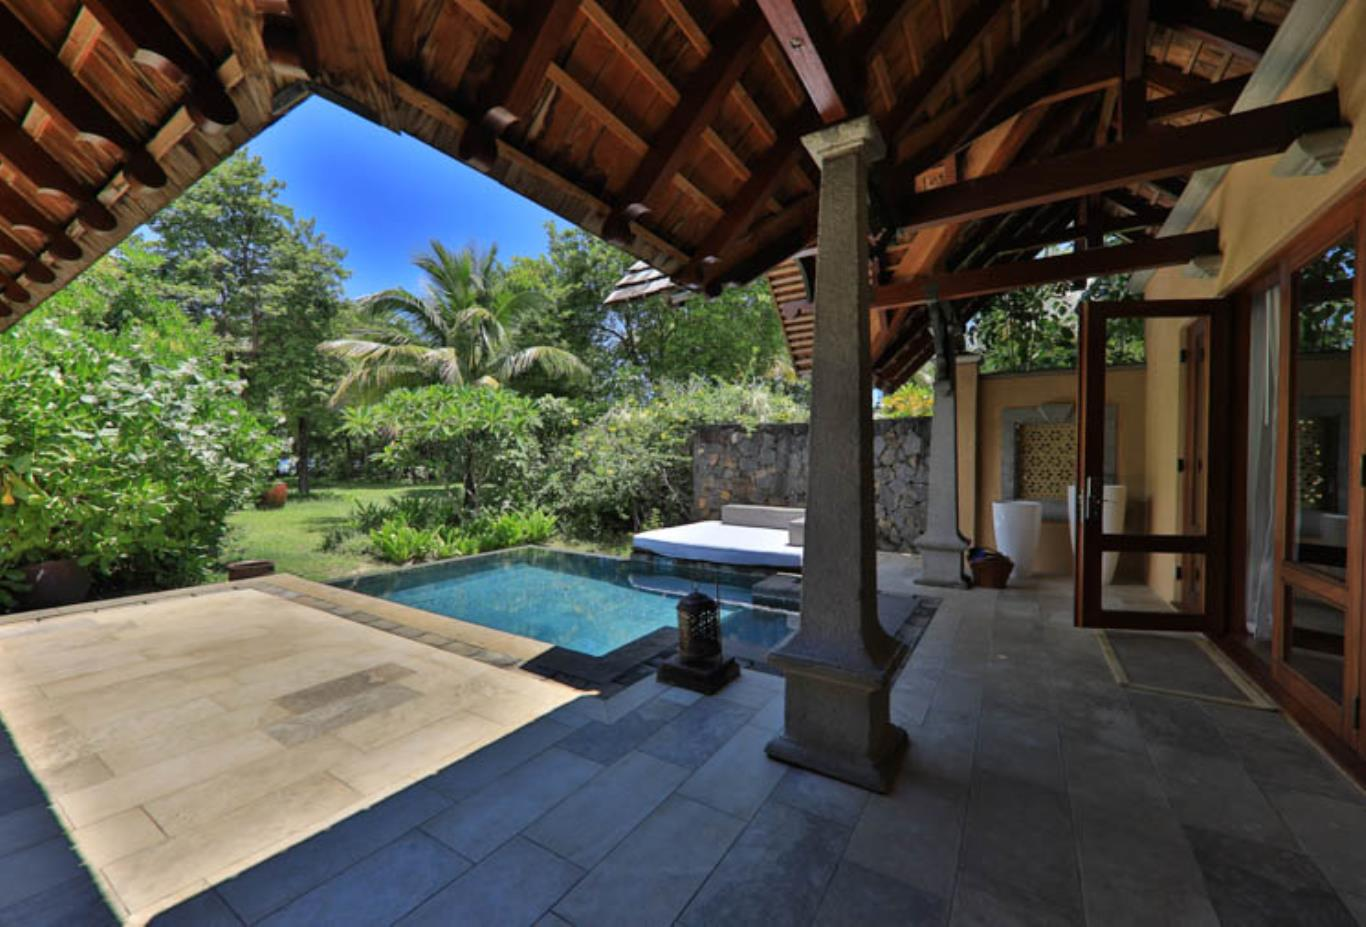 Beachfront Luxury Suite Pool Villa terrace and pool